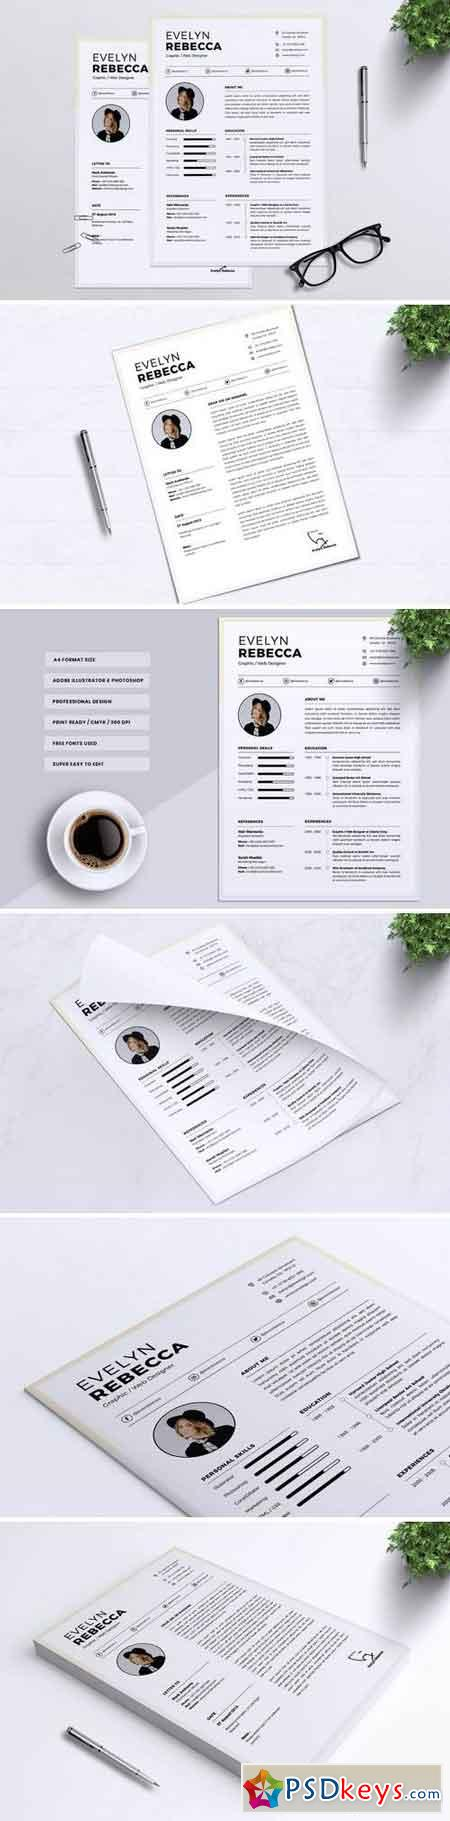 Minimalist CV Resume Vol. 06